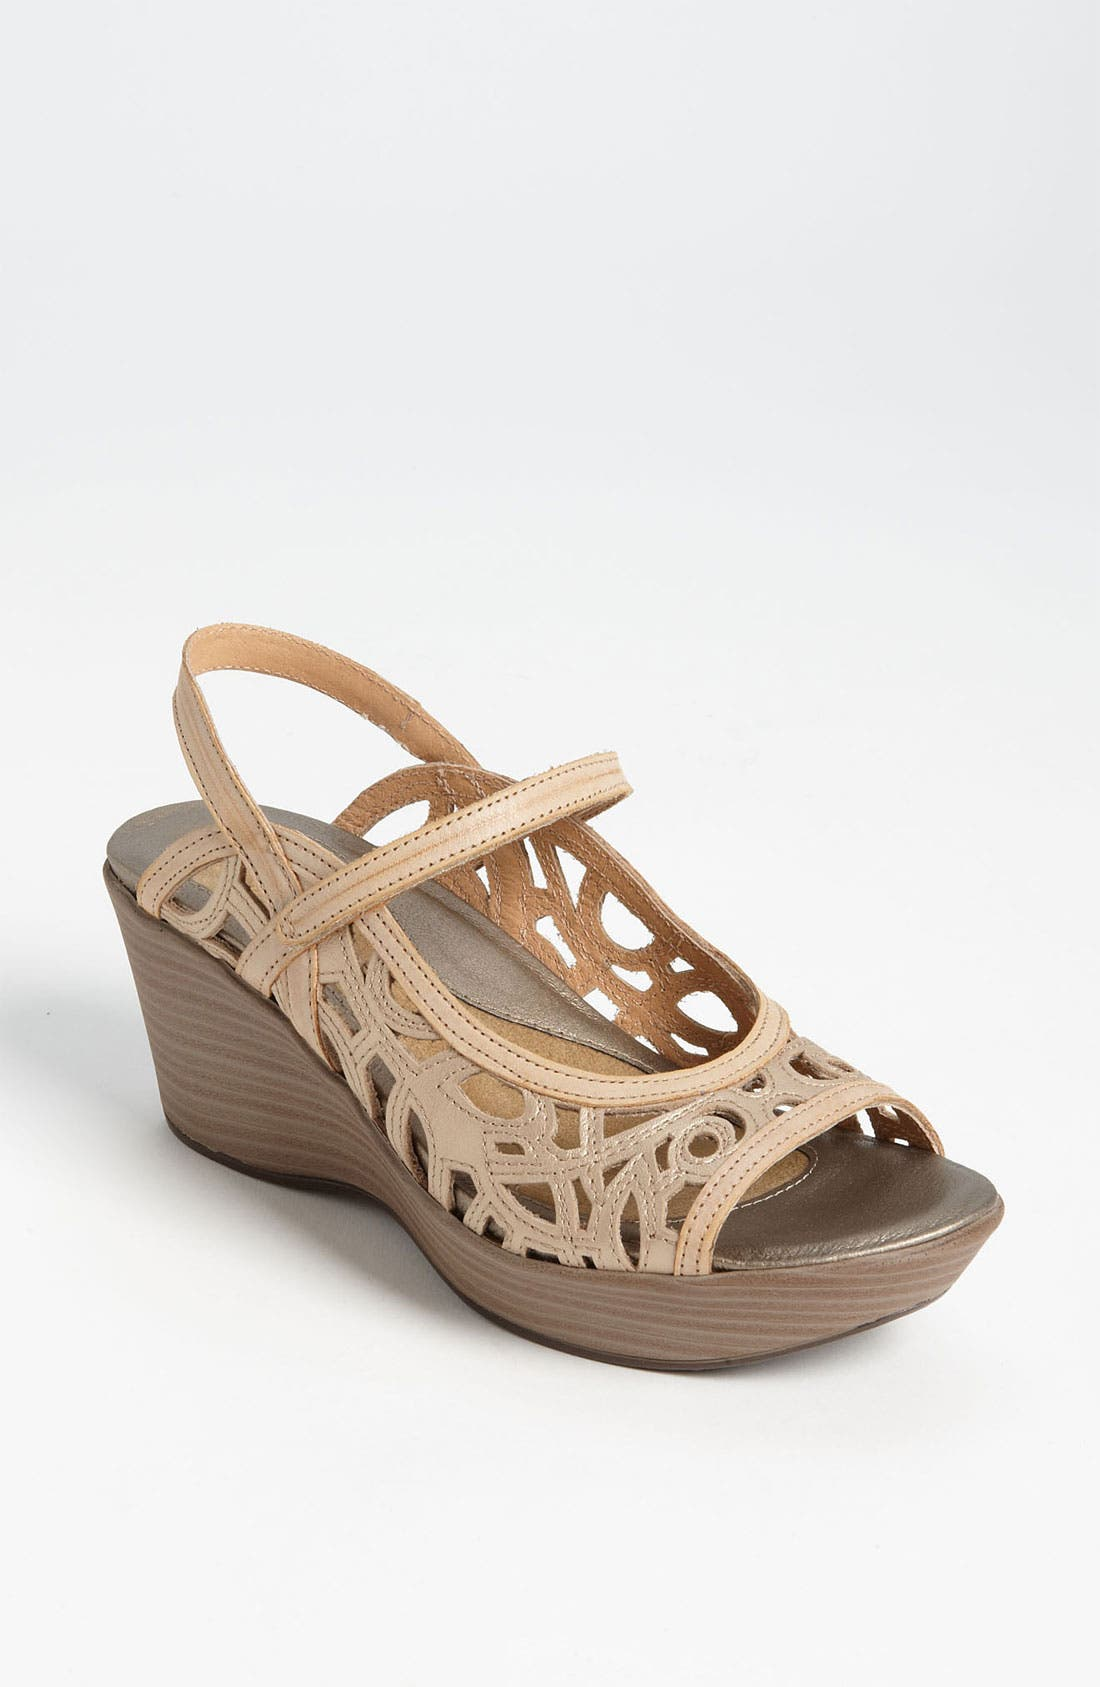 Main Image - Naot 'Deluxe' Sandal